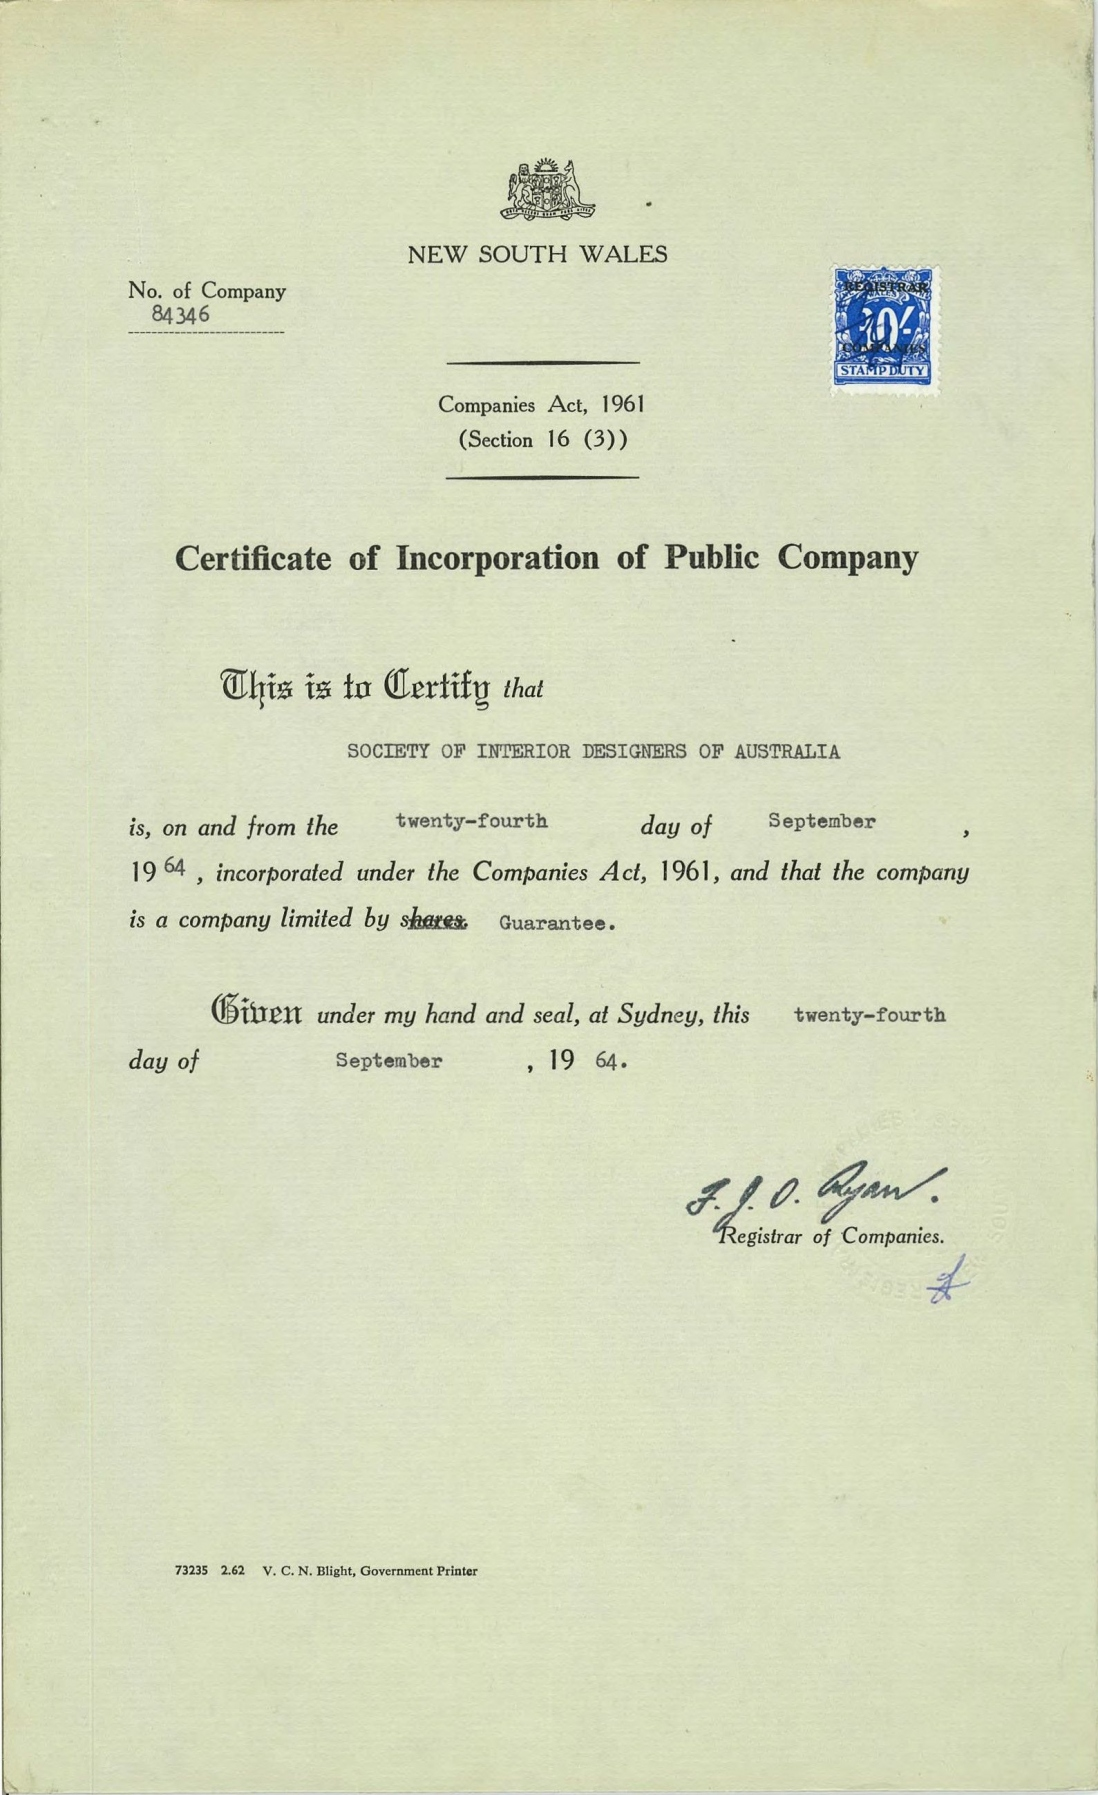 SIDA Certificate of Incorporation 1964